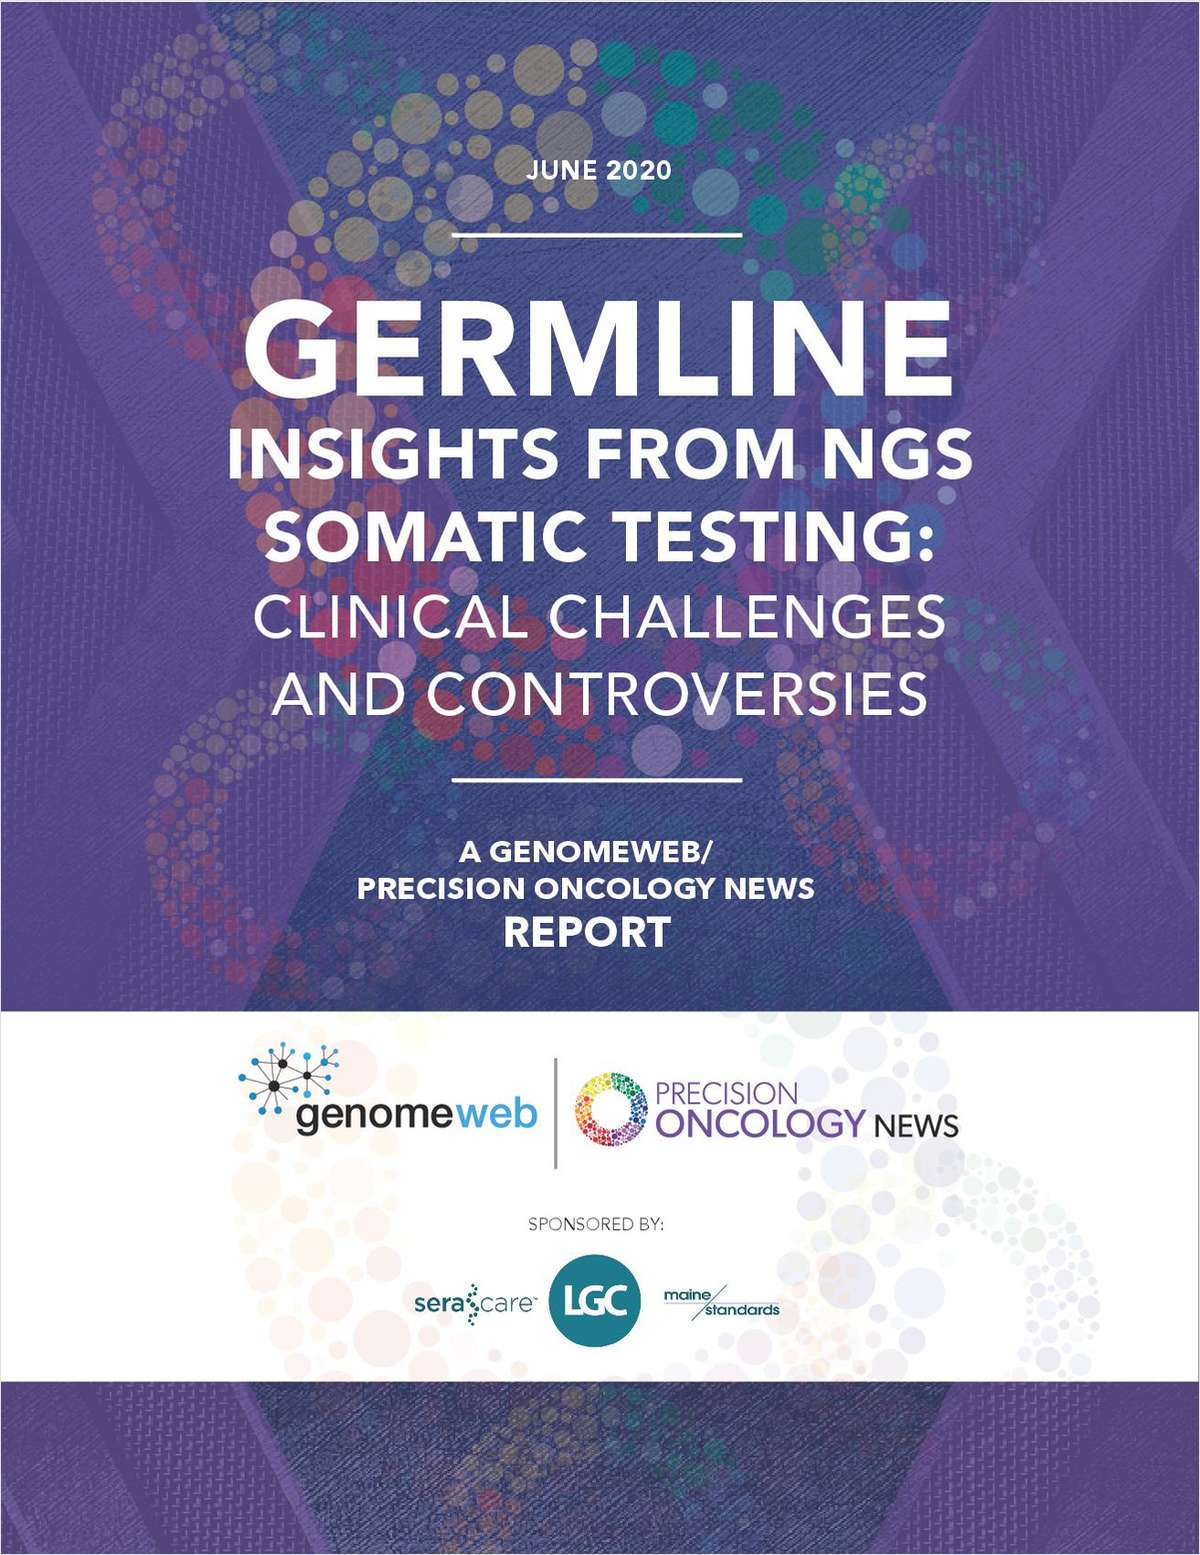 Germline Insights from NGS Somatic Testing: Clinical Challenges and Controversies A Precision Oncology News Report